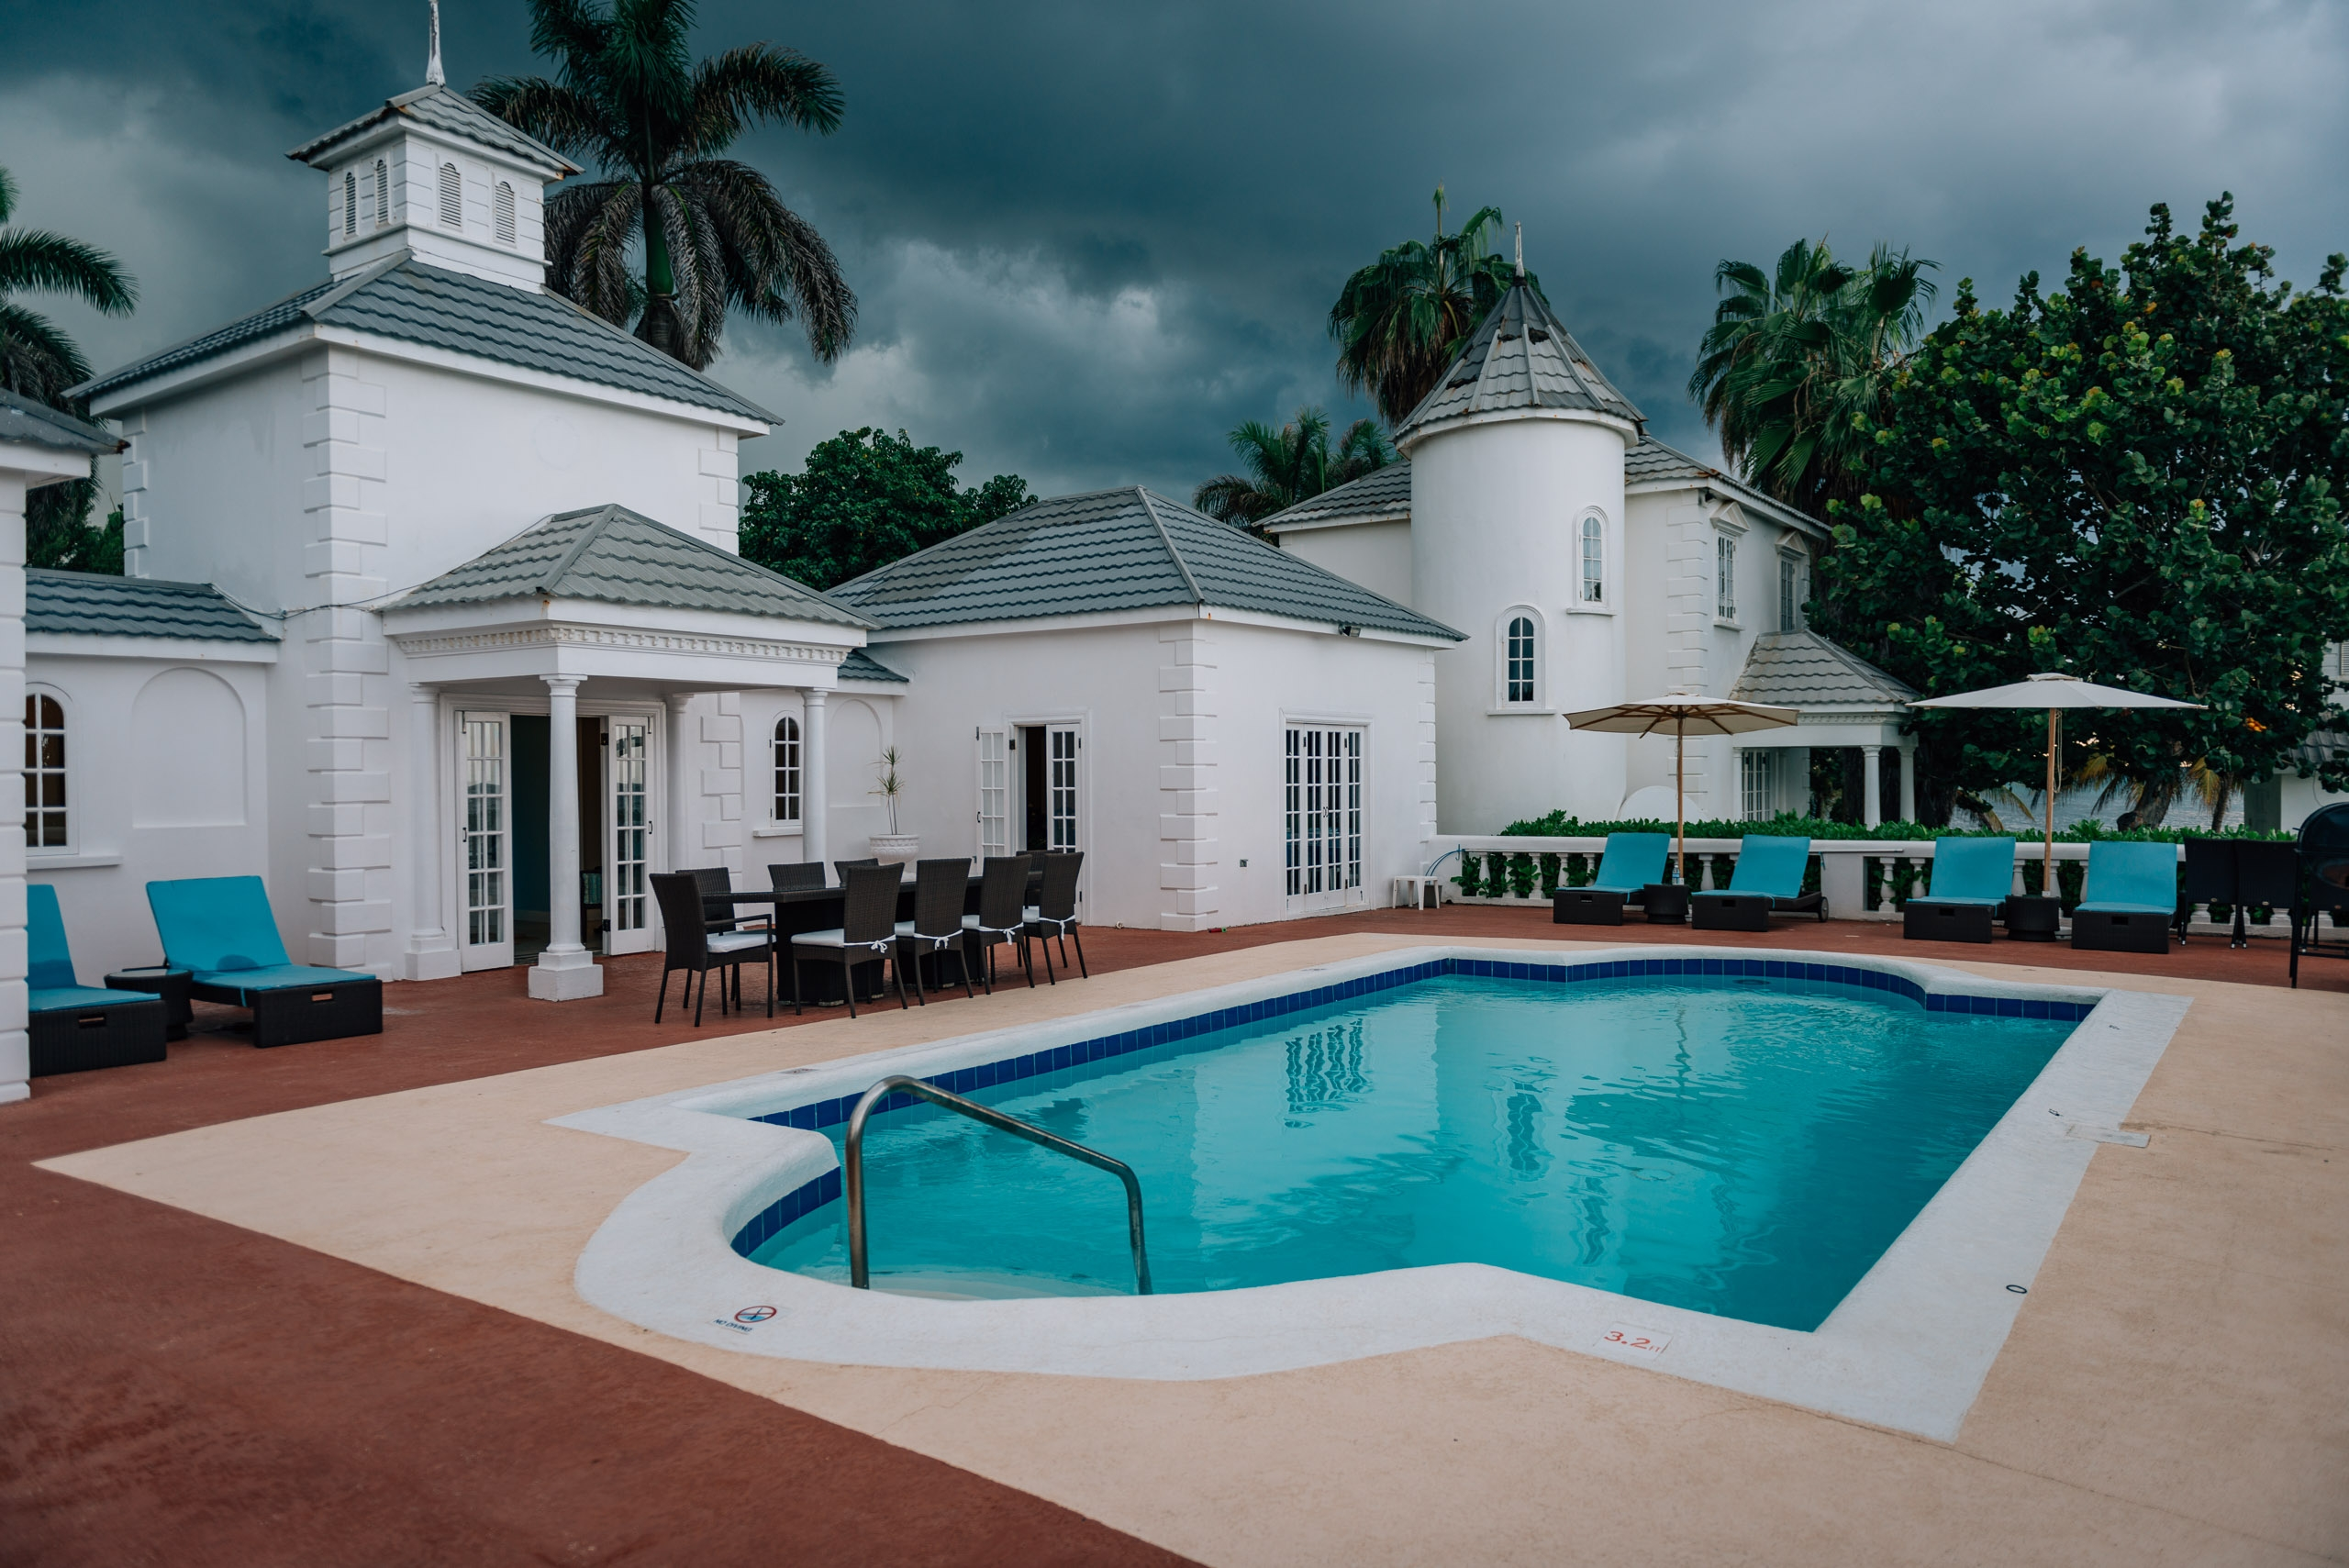 A Storm Approaches the Villa in Jamaica